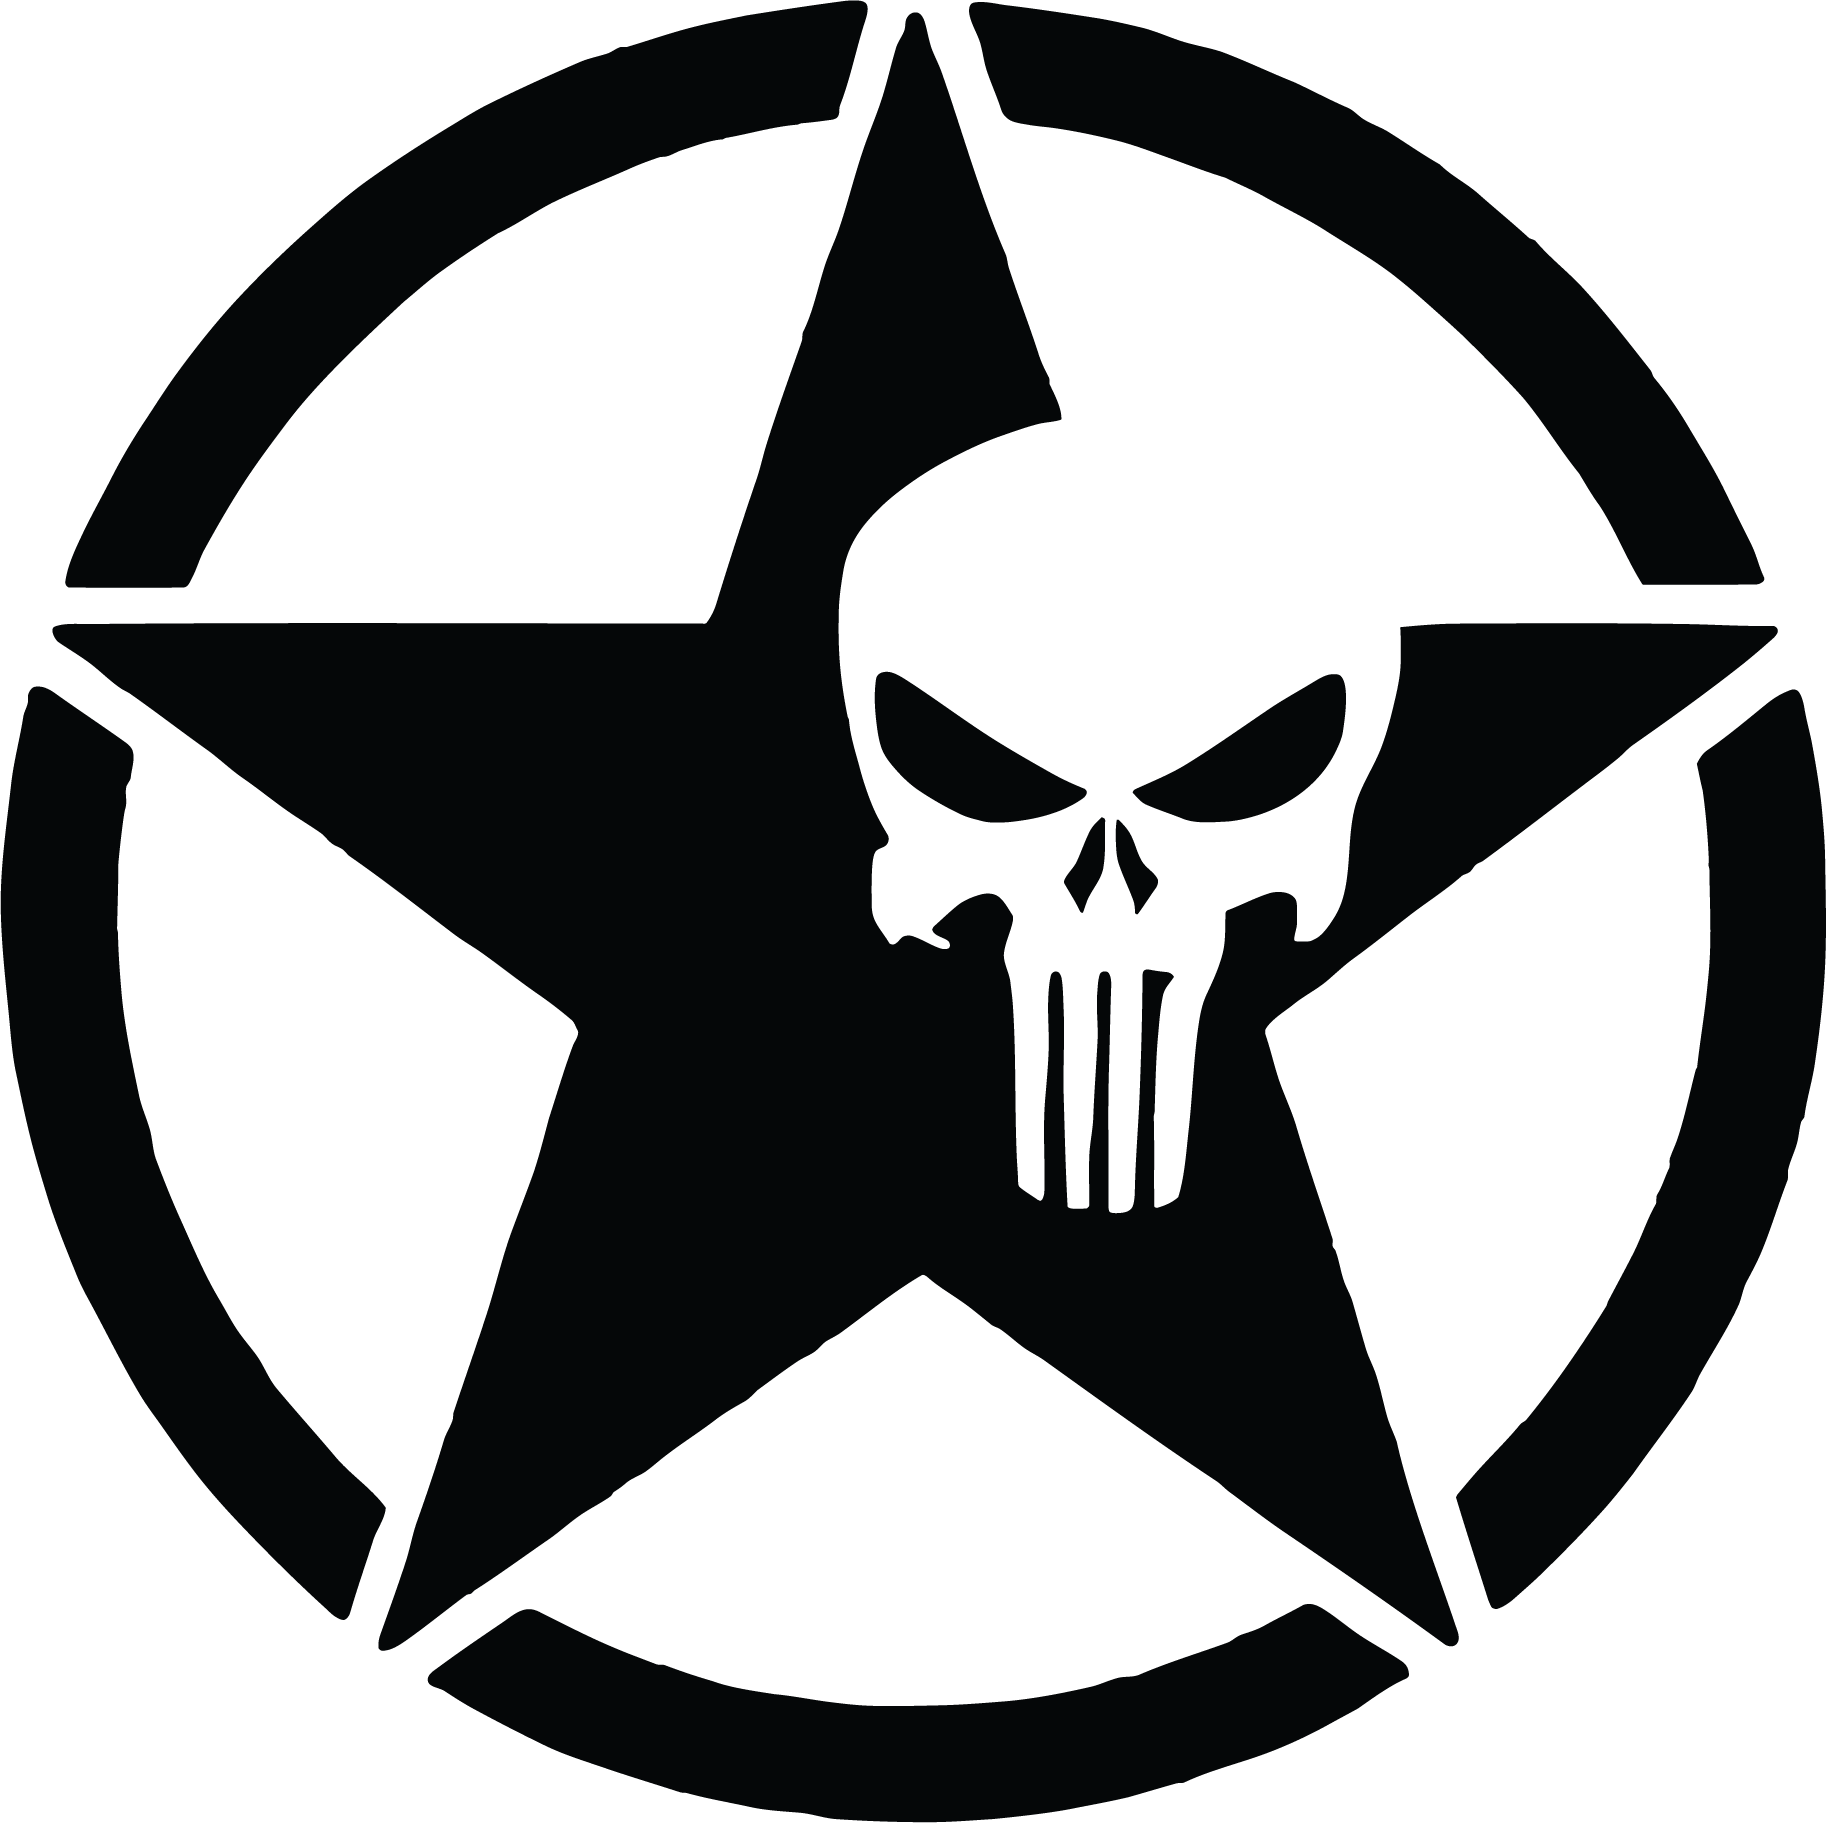 Distressed svg cracked. Army punisher skull cricut